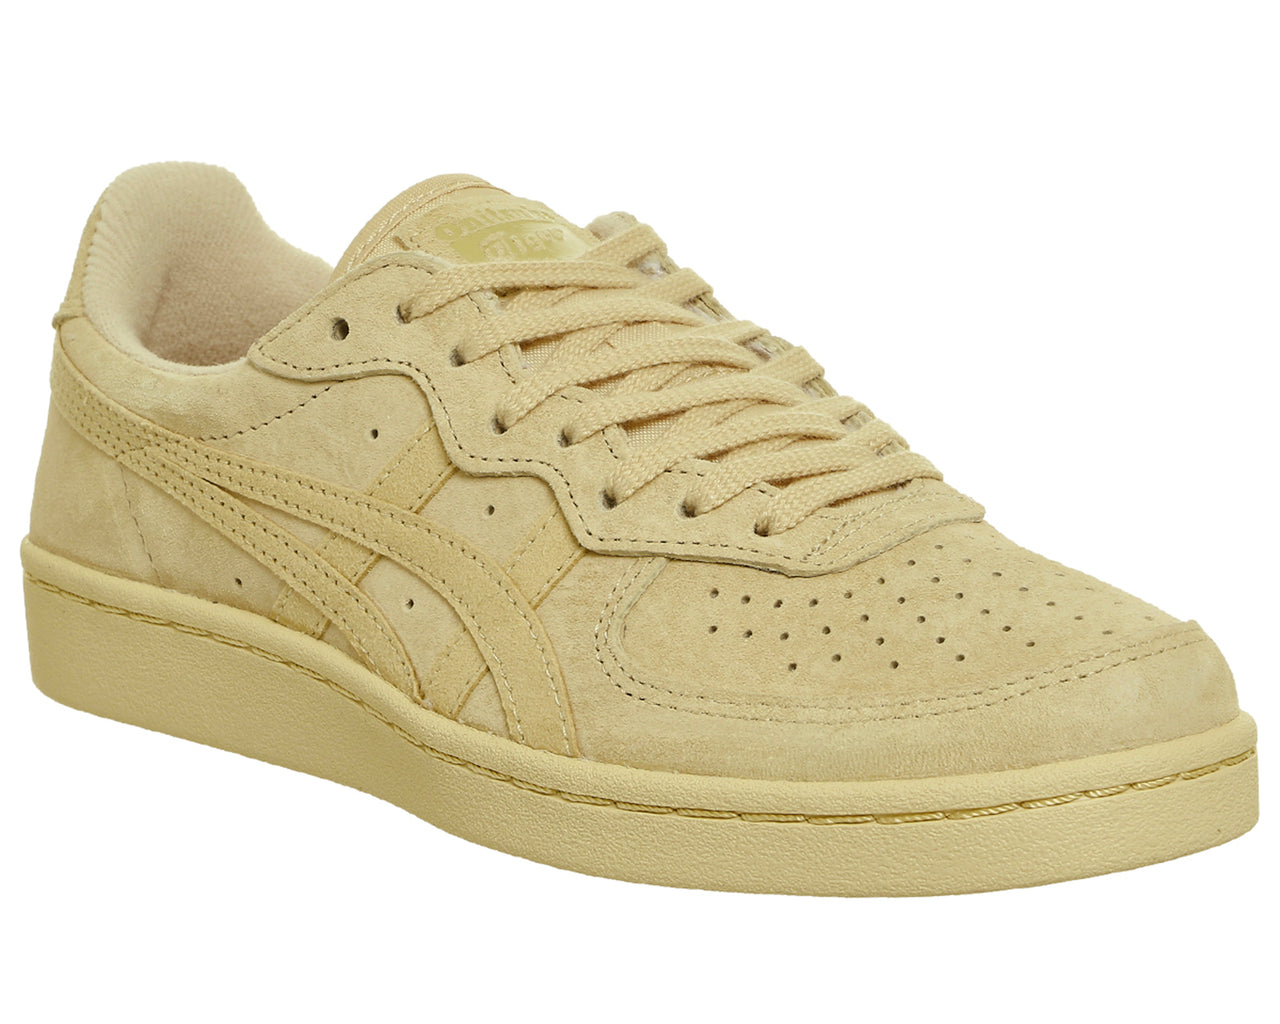 new product 35f9b 6de0b Unisex Onitsuka Tiger Gsm Trainers Marzipan